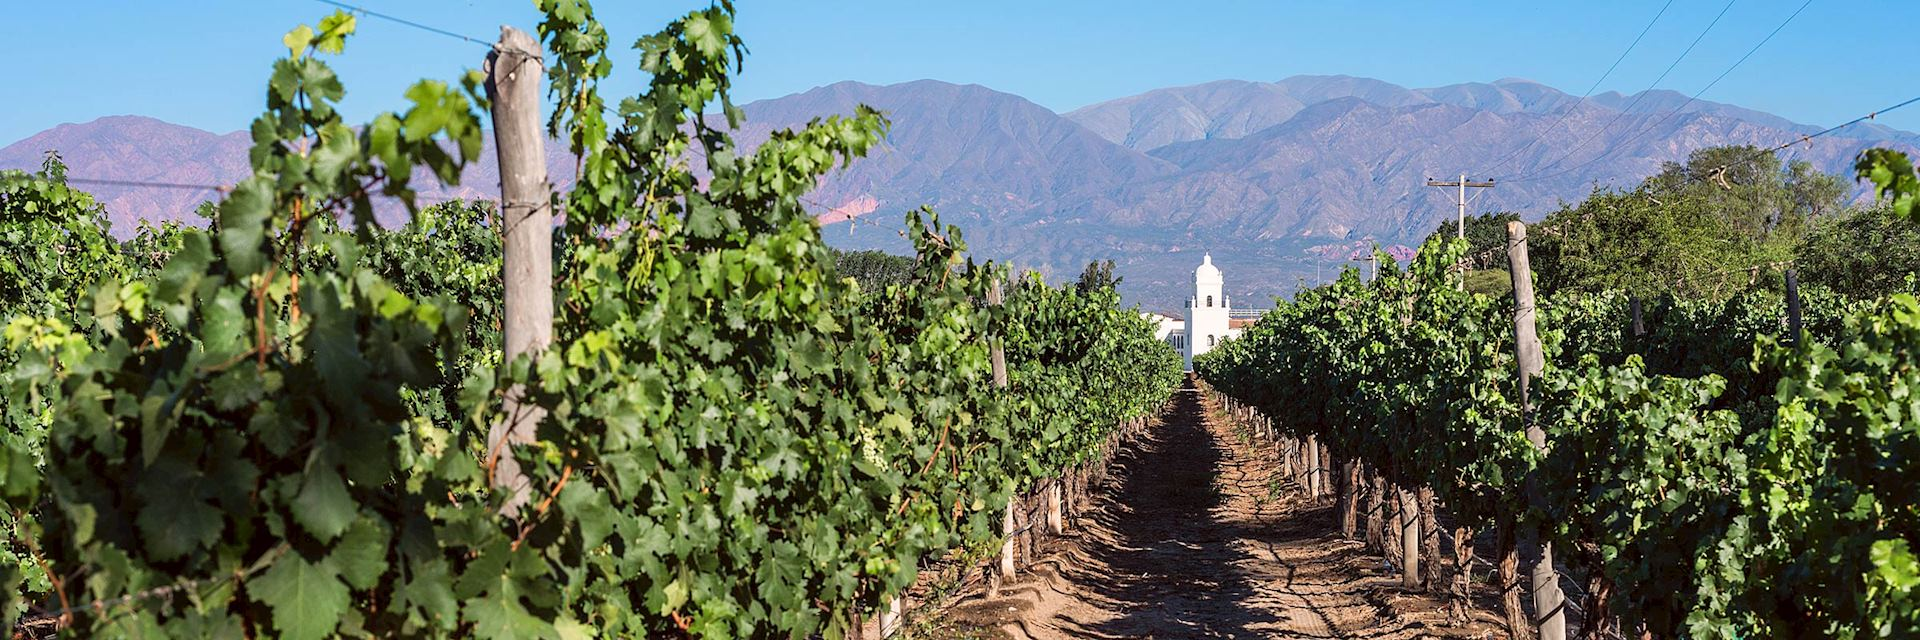 Cafayate vineyard